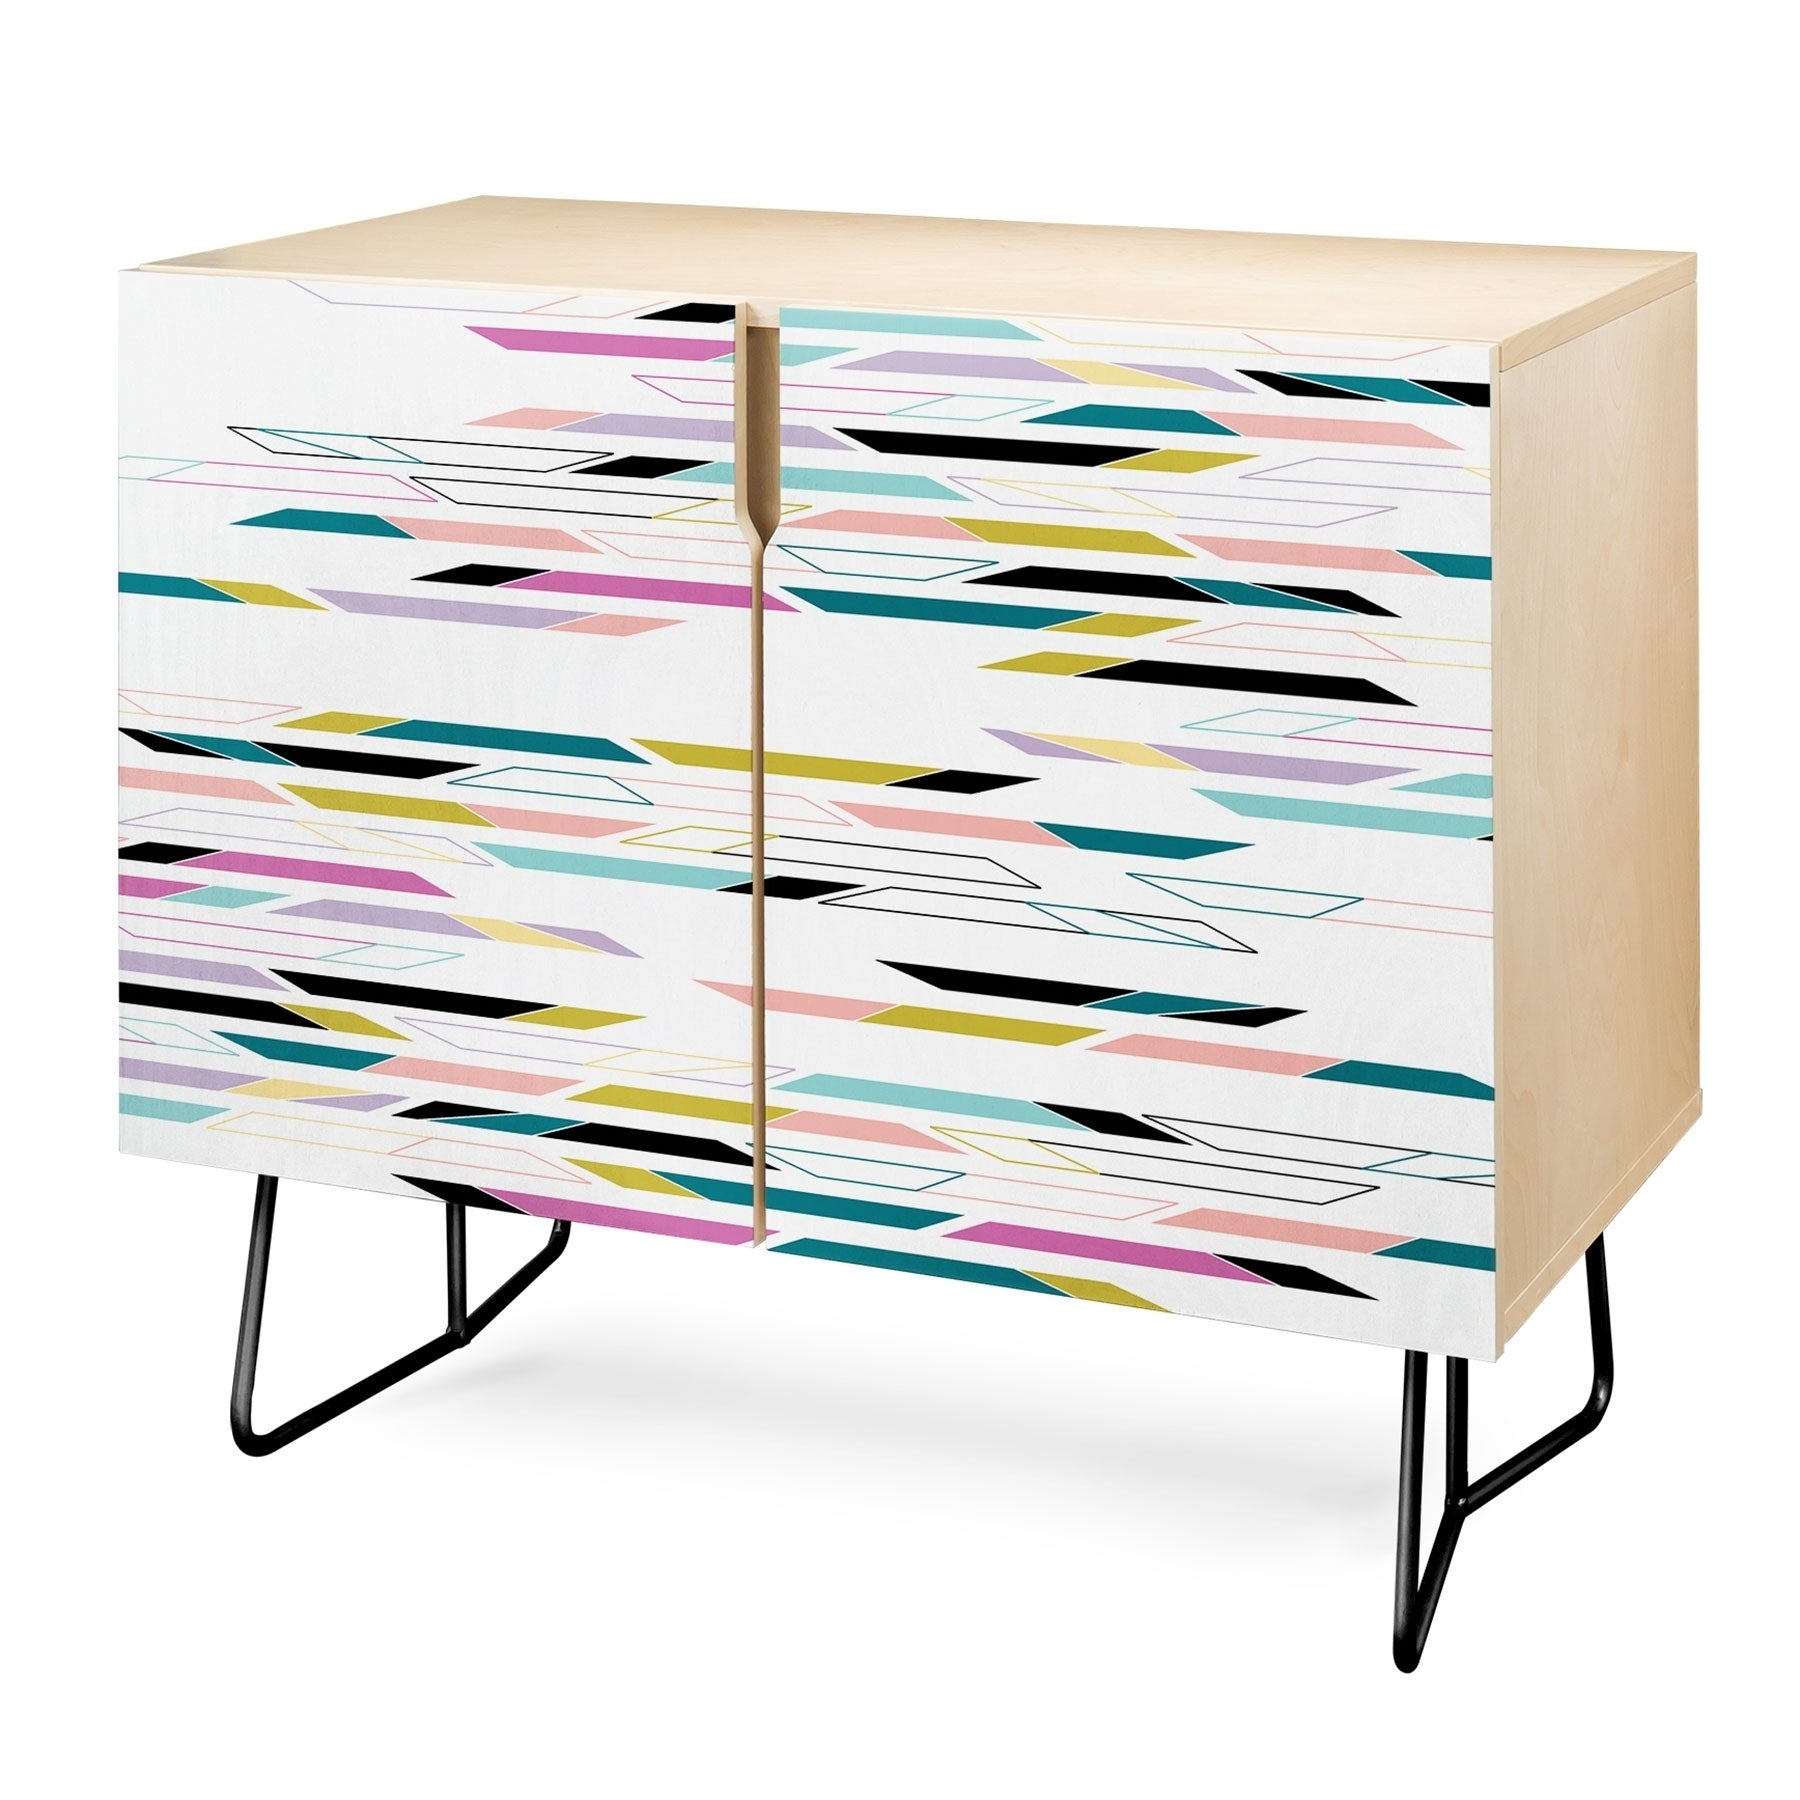 Deny Designs Multi Colored Geometric Shapes Credenza (Birch Or Walnut, 3  Leg Options) With Multi Colored Geometric Shapes Credenzas (View 11 of 20)